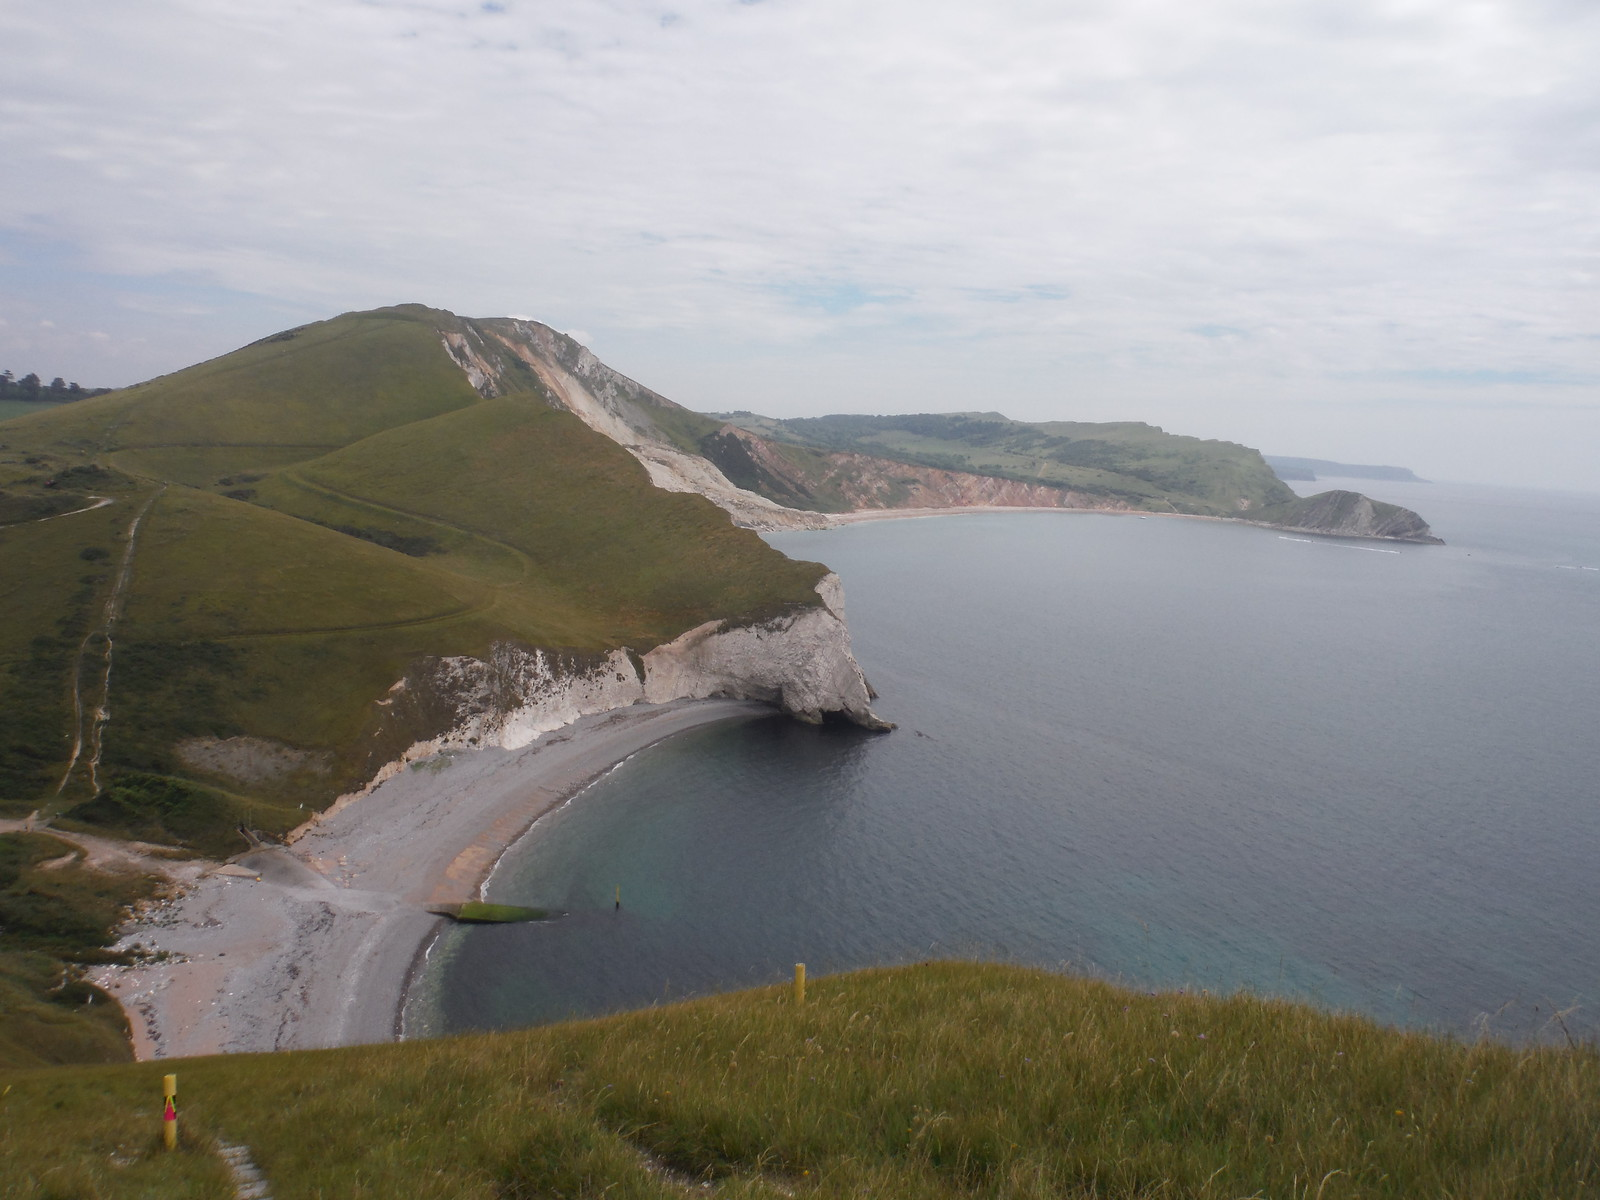 Arish Mell Bay and Worbarrow Bay, from Bindon Hill SWC Walk 54 - Lulworth Cove Circular (via Tyneham and Durdle Door)